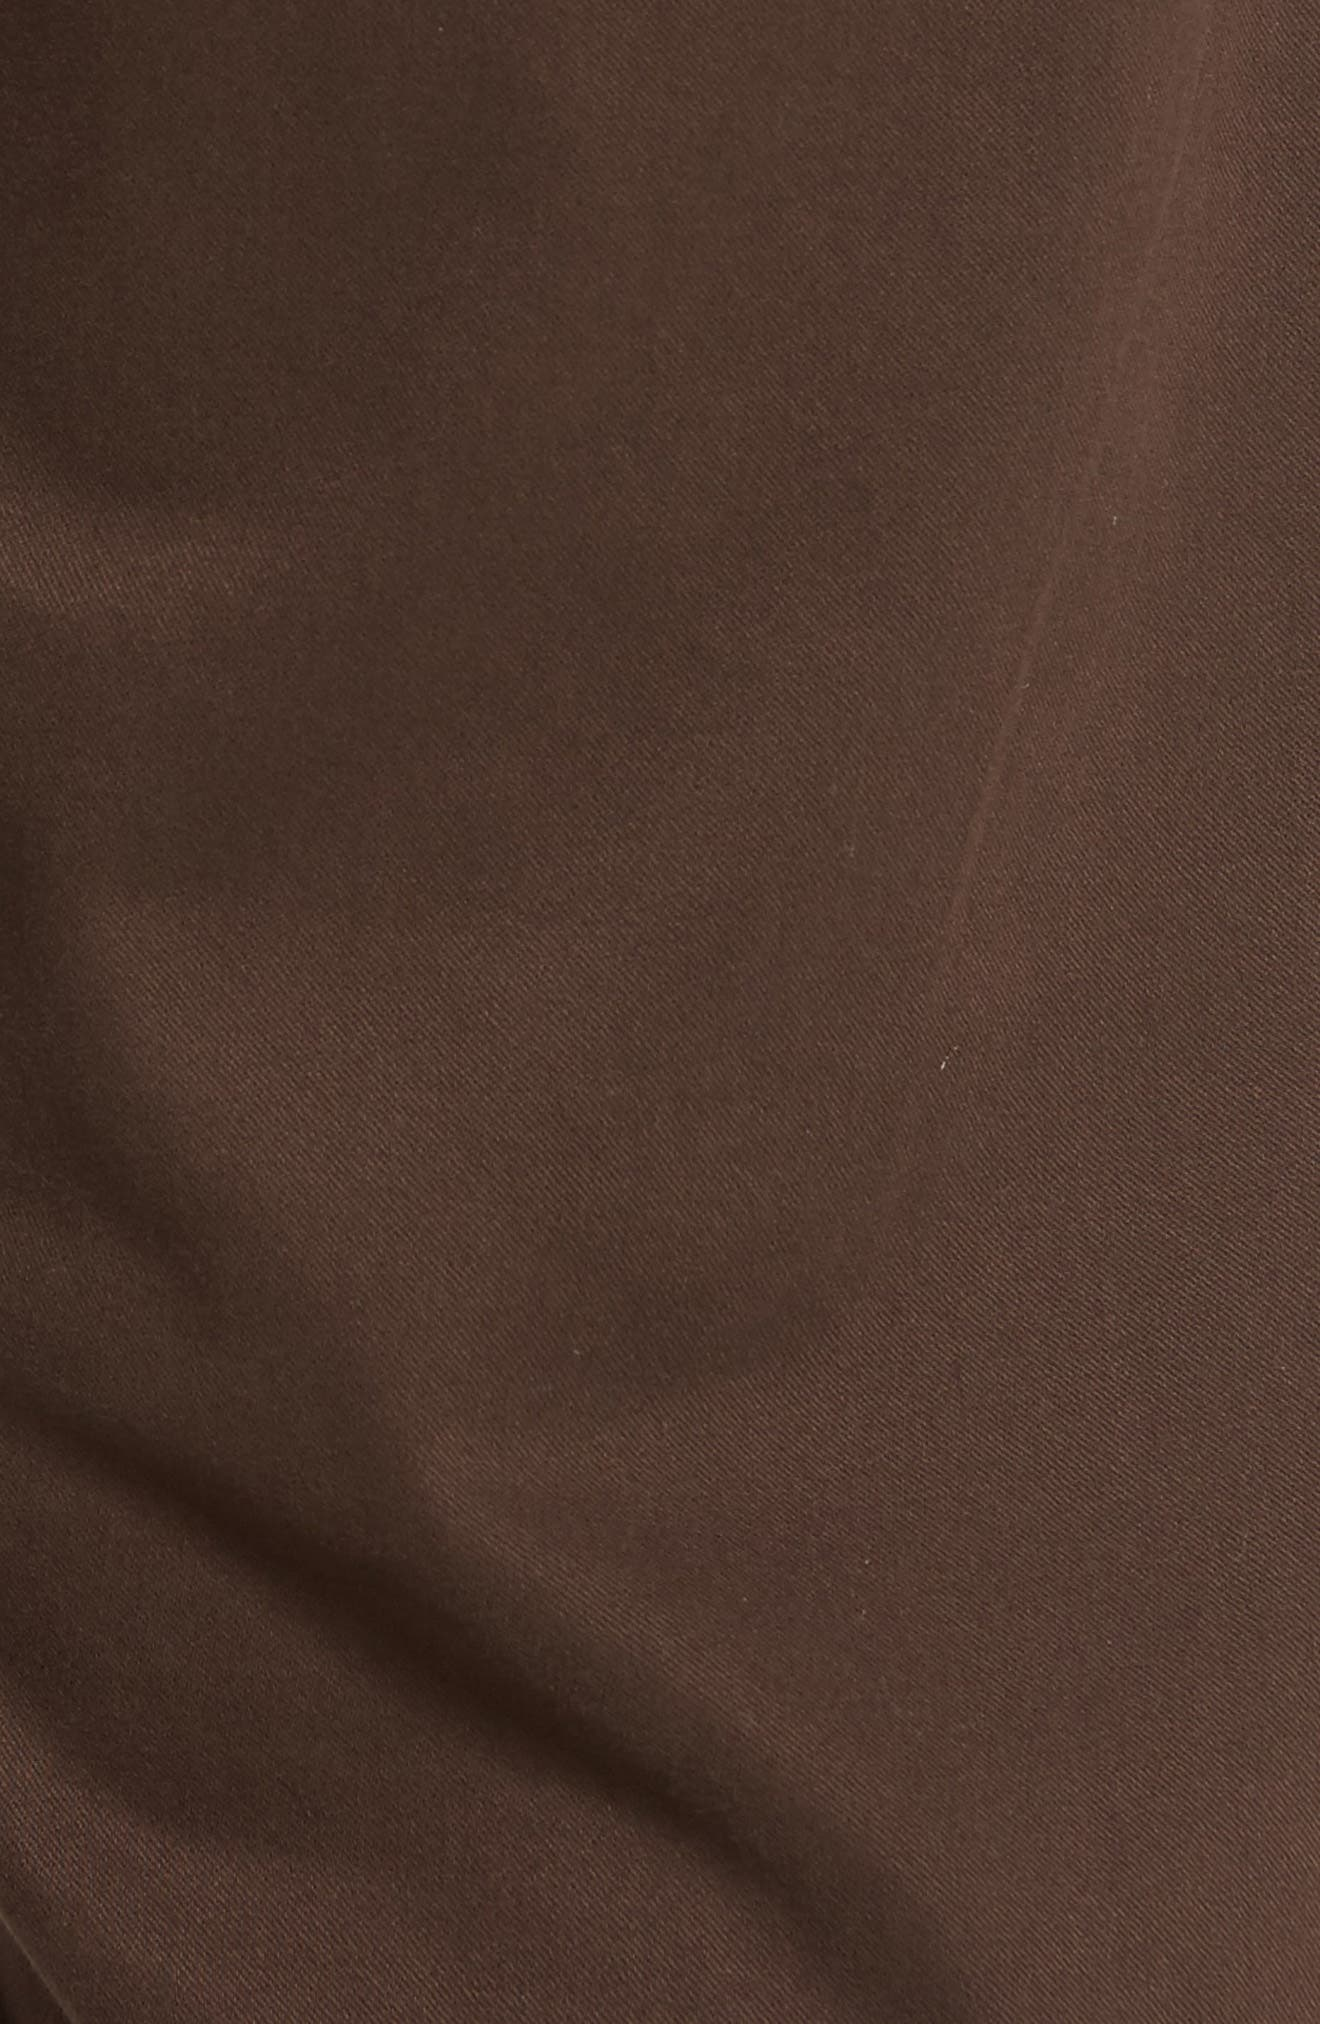 Zach Straight Fit Twill Pants,                             Alternate thumbnail 5, color,                             COFFEE BEAN TWILL